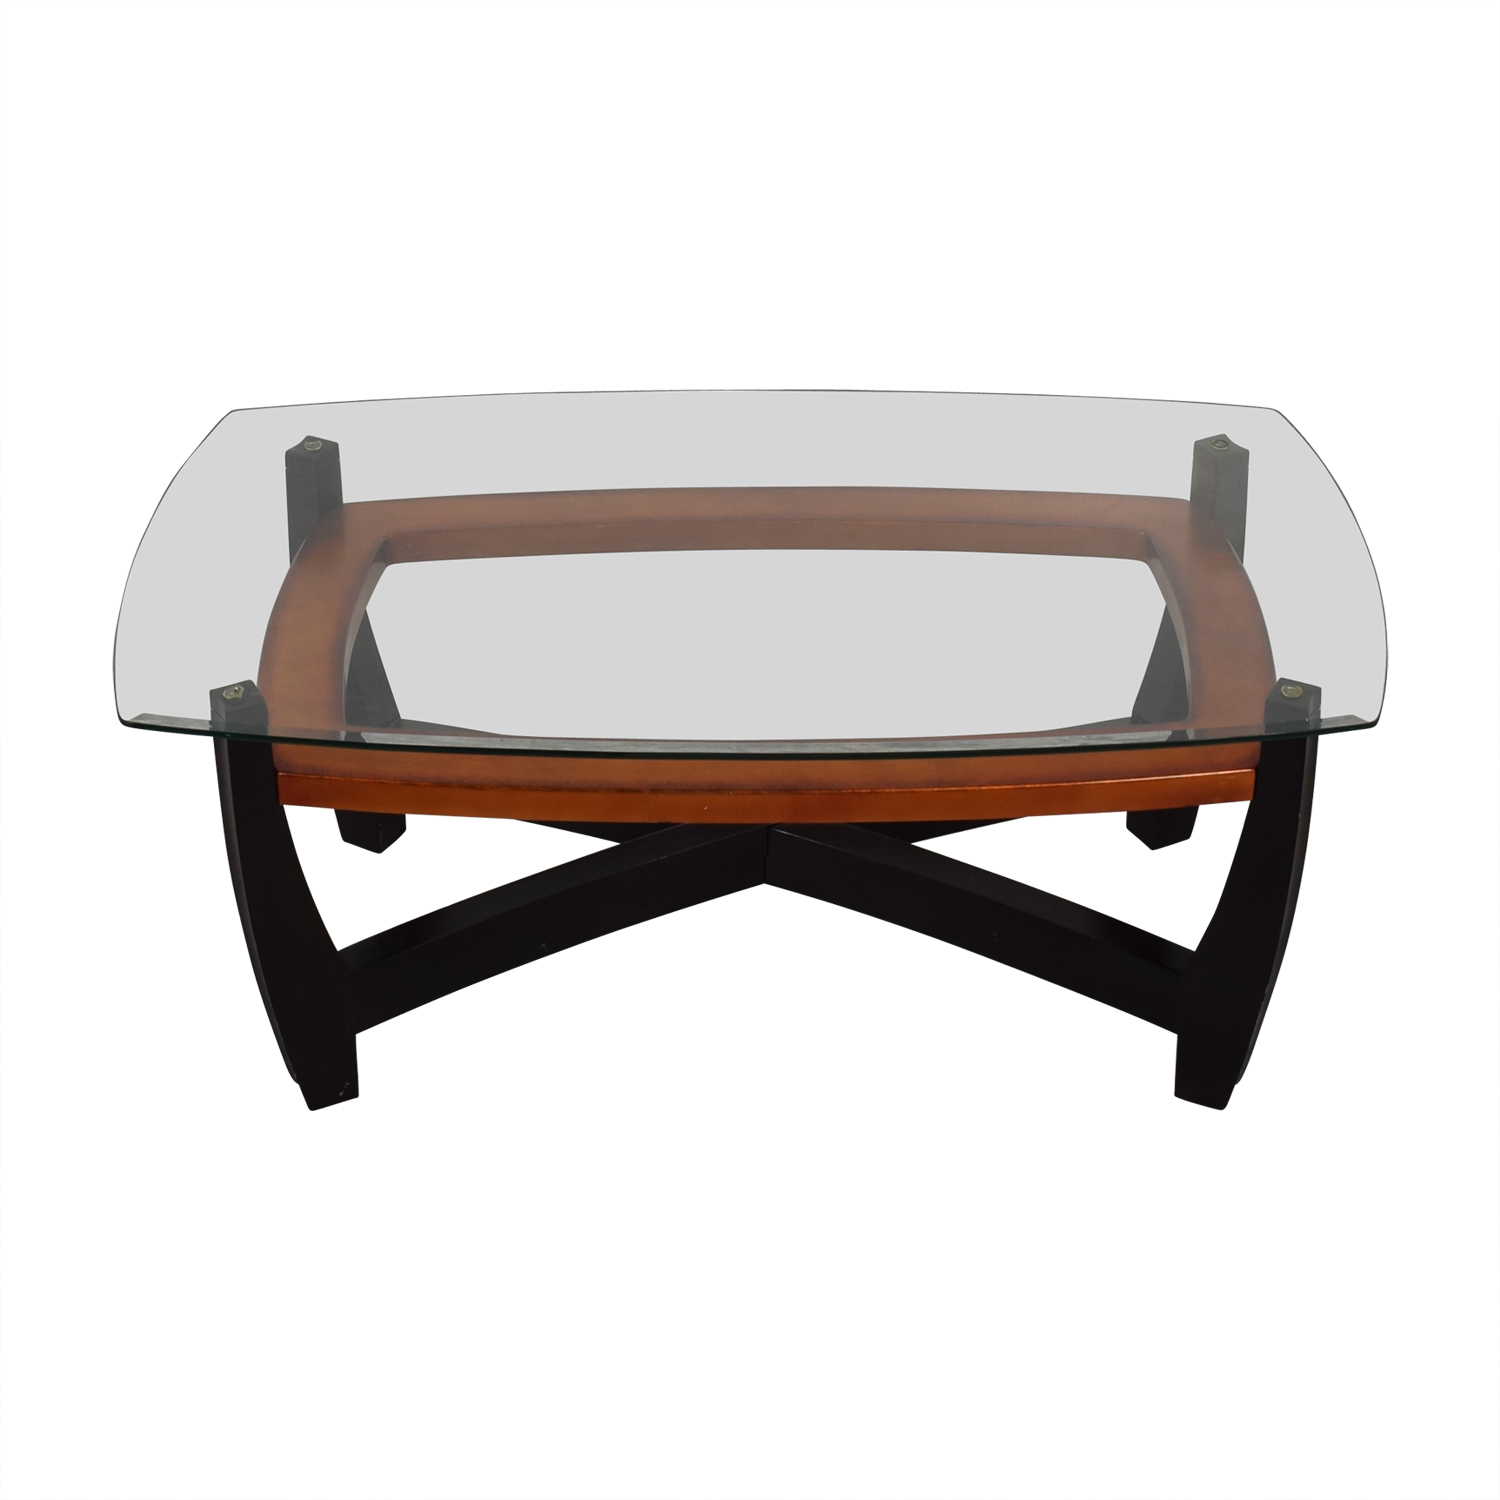 shop Raymour & Flanigan Black and Brown Glass Top Coffee Table Raymour & Flanigan